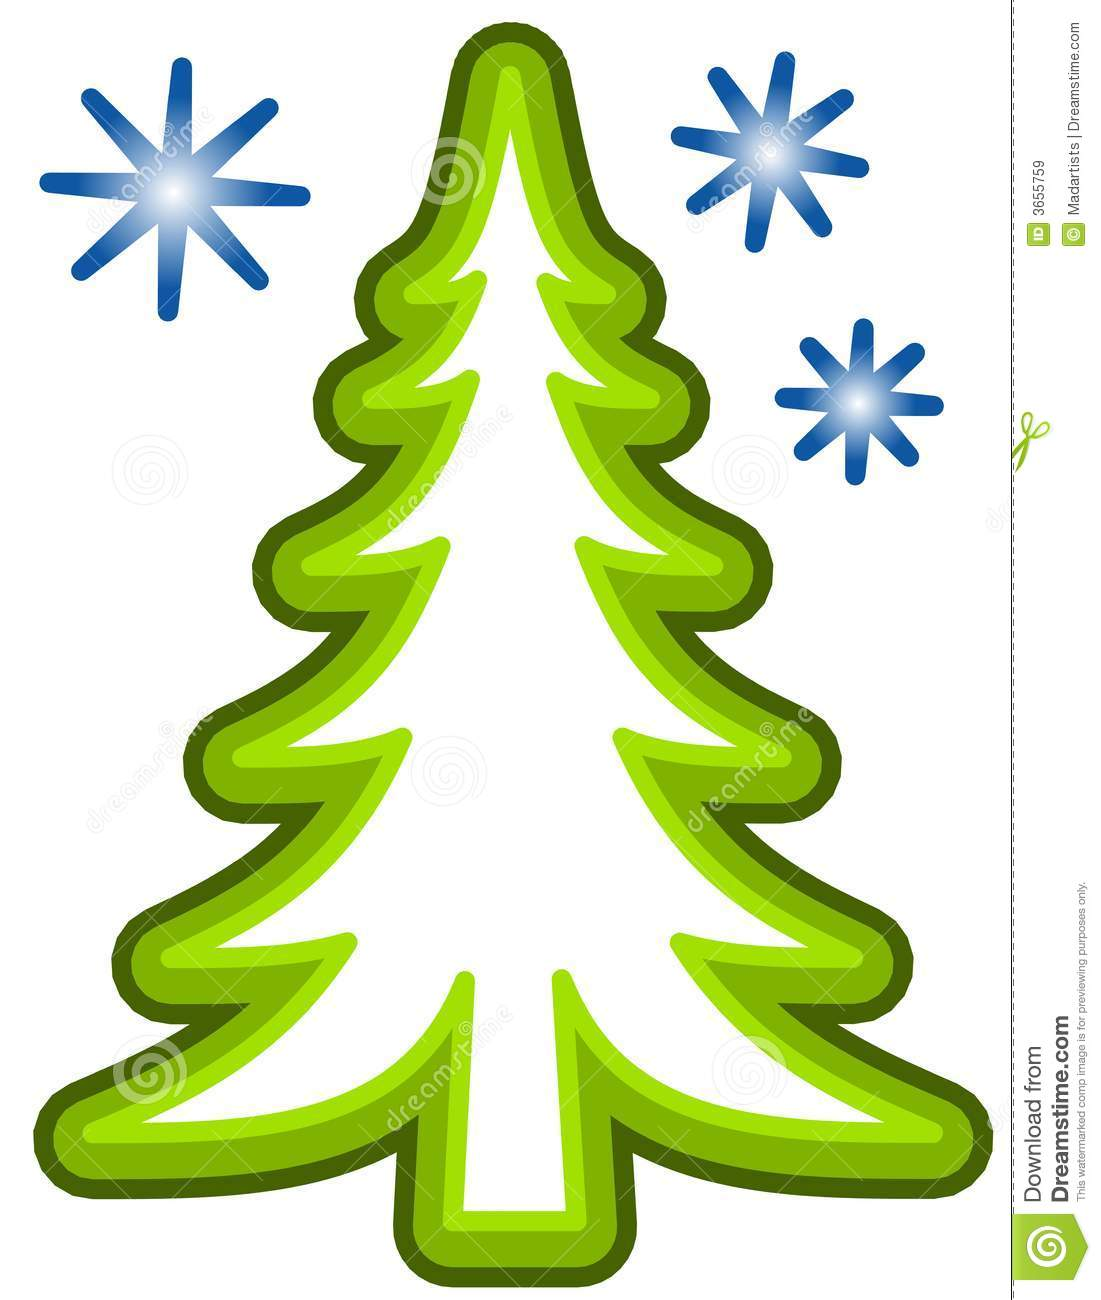 simple christmas tree clip art stock illustration illustration of rh dreamstime com charlie brown christmas tree free clipart christmas tree star clipart free